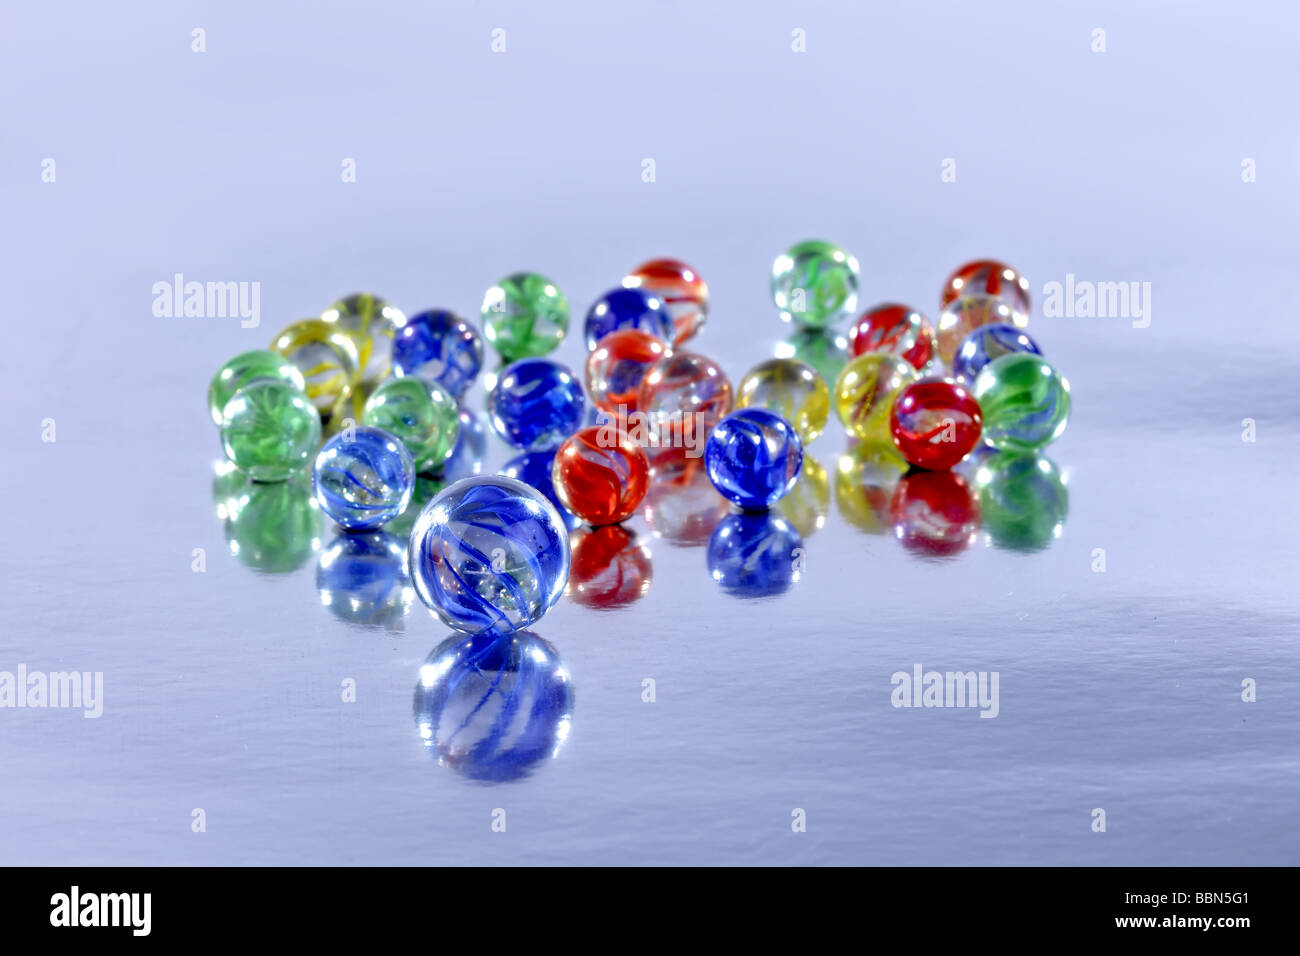 Many colourful marbles on a reflective surface for a background use - Stock Image